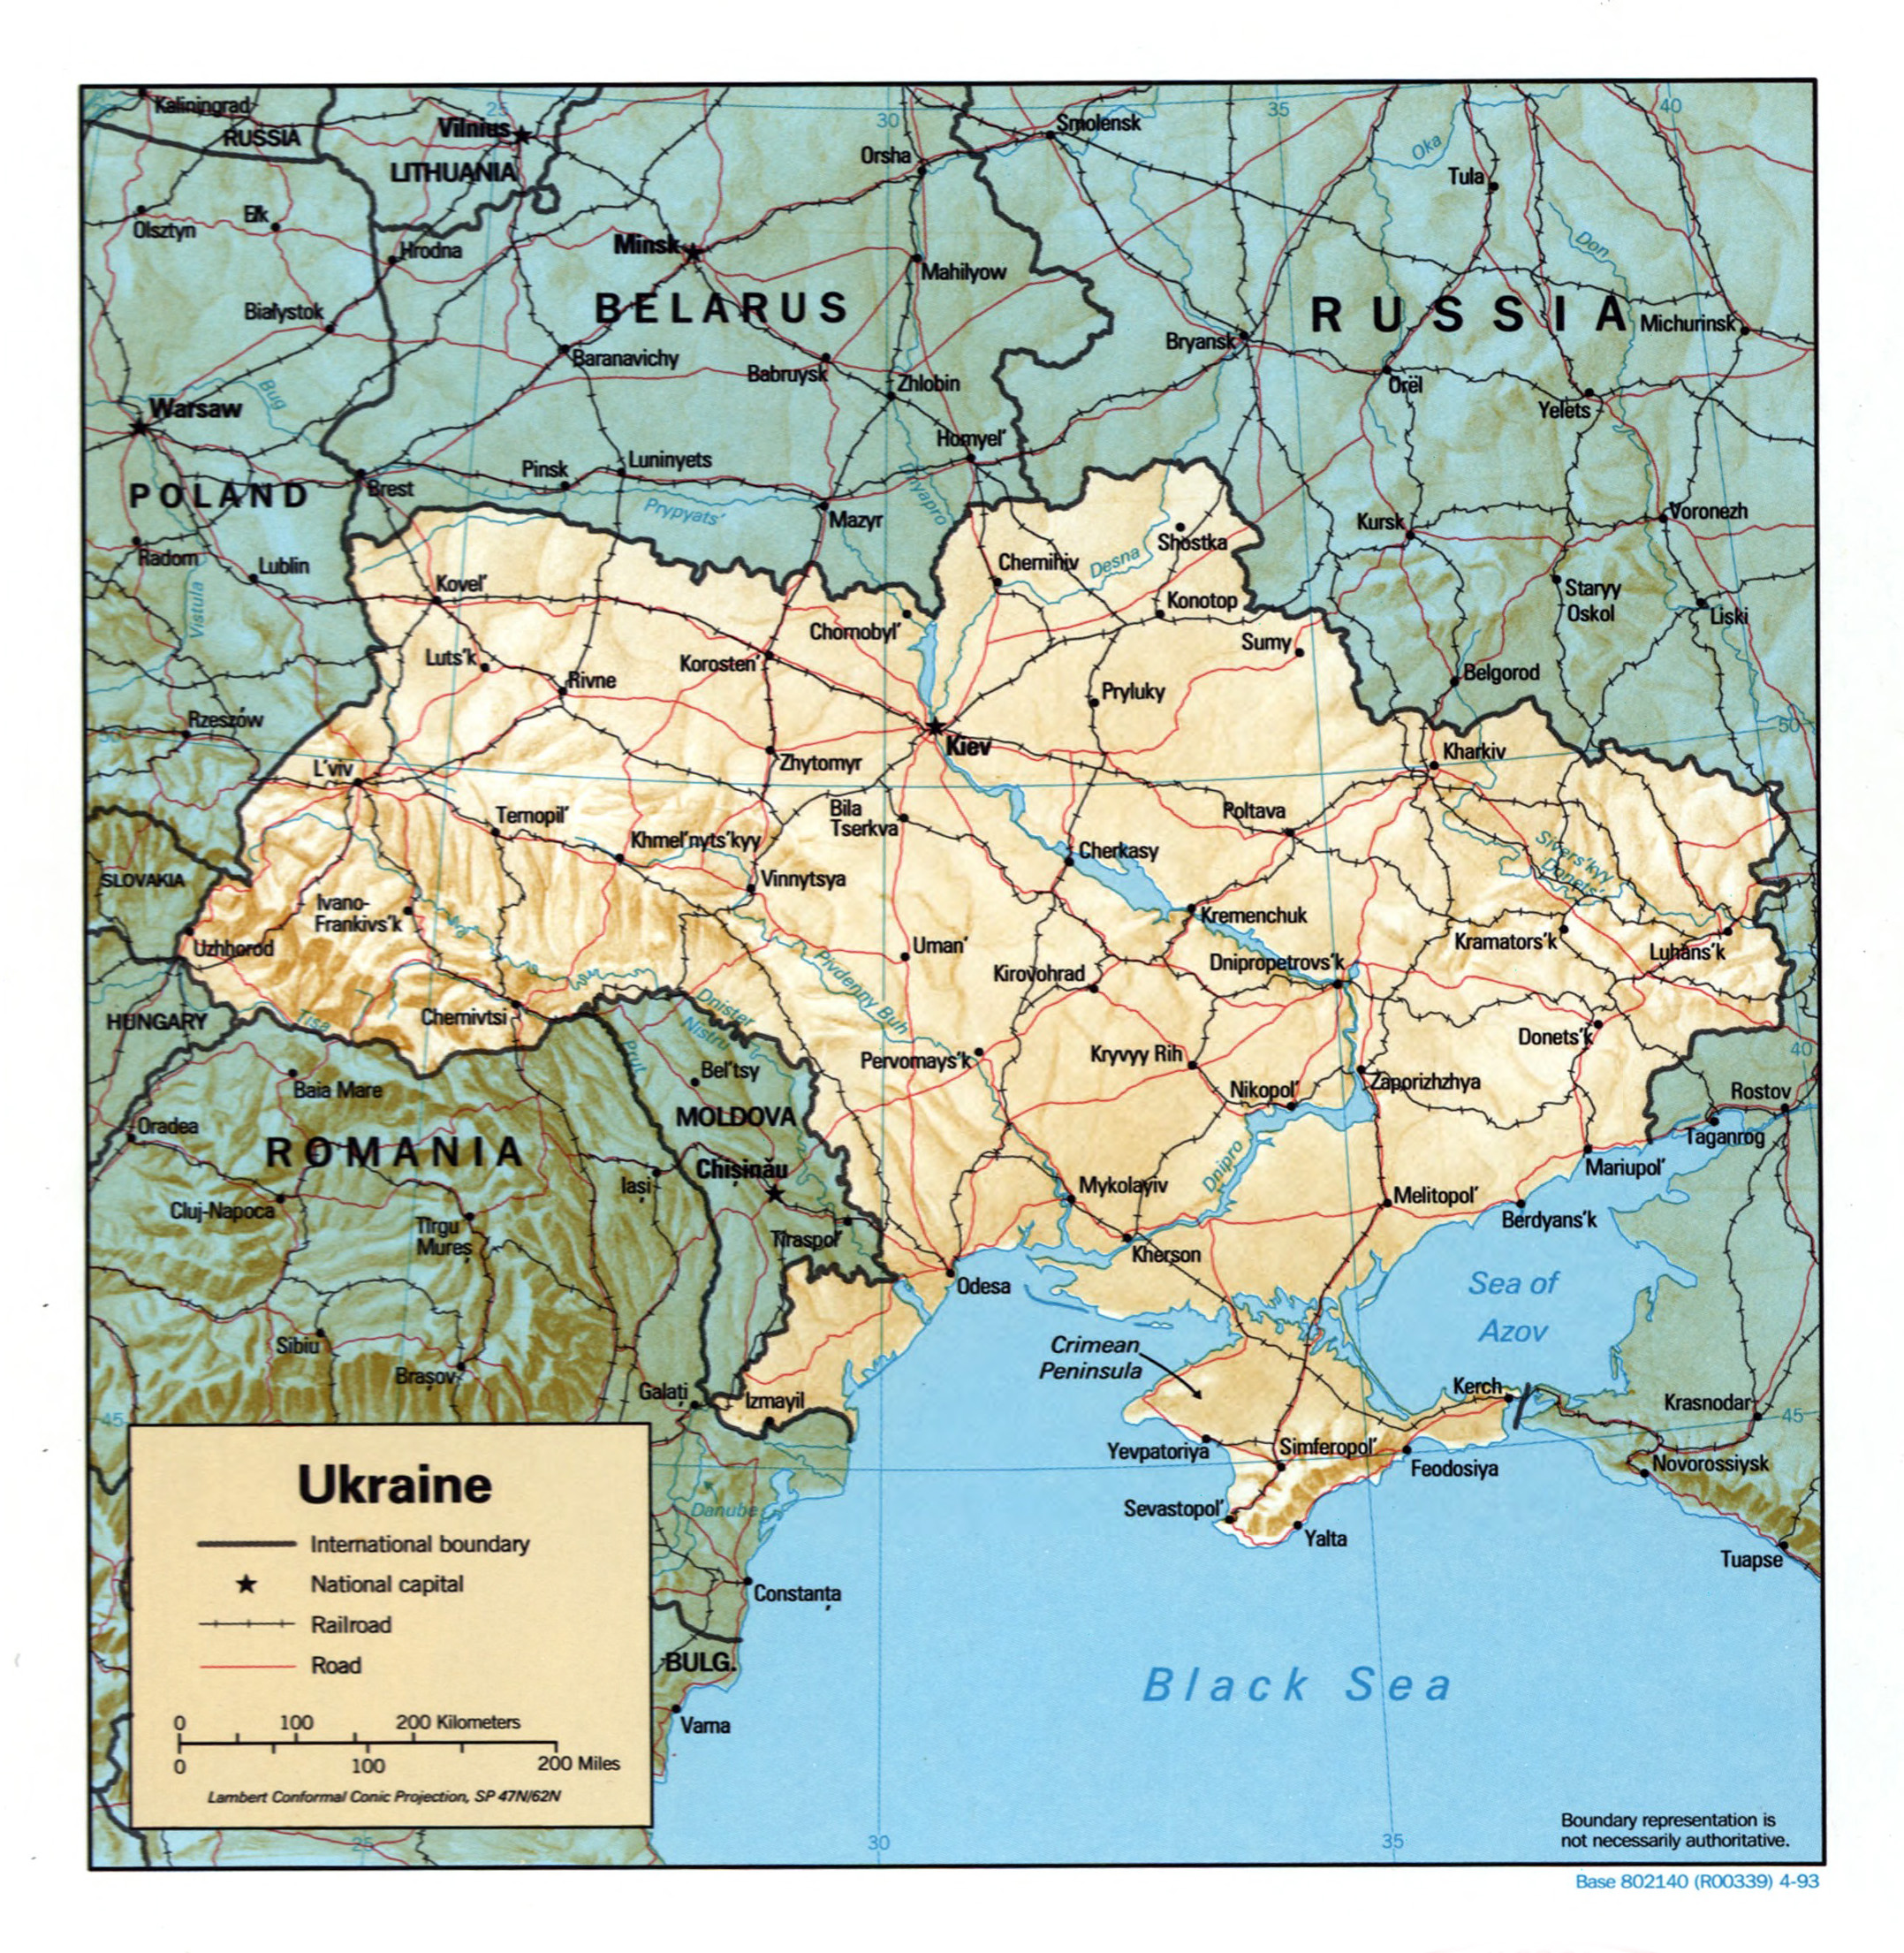 Large detailed political map of Ukraine with relief, roads ... on beautiful women of europe, world atlas of europe, black and white world map europe, world map europe 1500, world map japan, world globe map europe, geography of europe, country of europe, shapes of europe, world war 2 allies and axis countries map, world us map, world map europe and america, world map eastern europe, canada of europe, world map with countries, world map western asia, peninsulas of europe, rivers of europe, asia of europe, germany of europe,